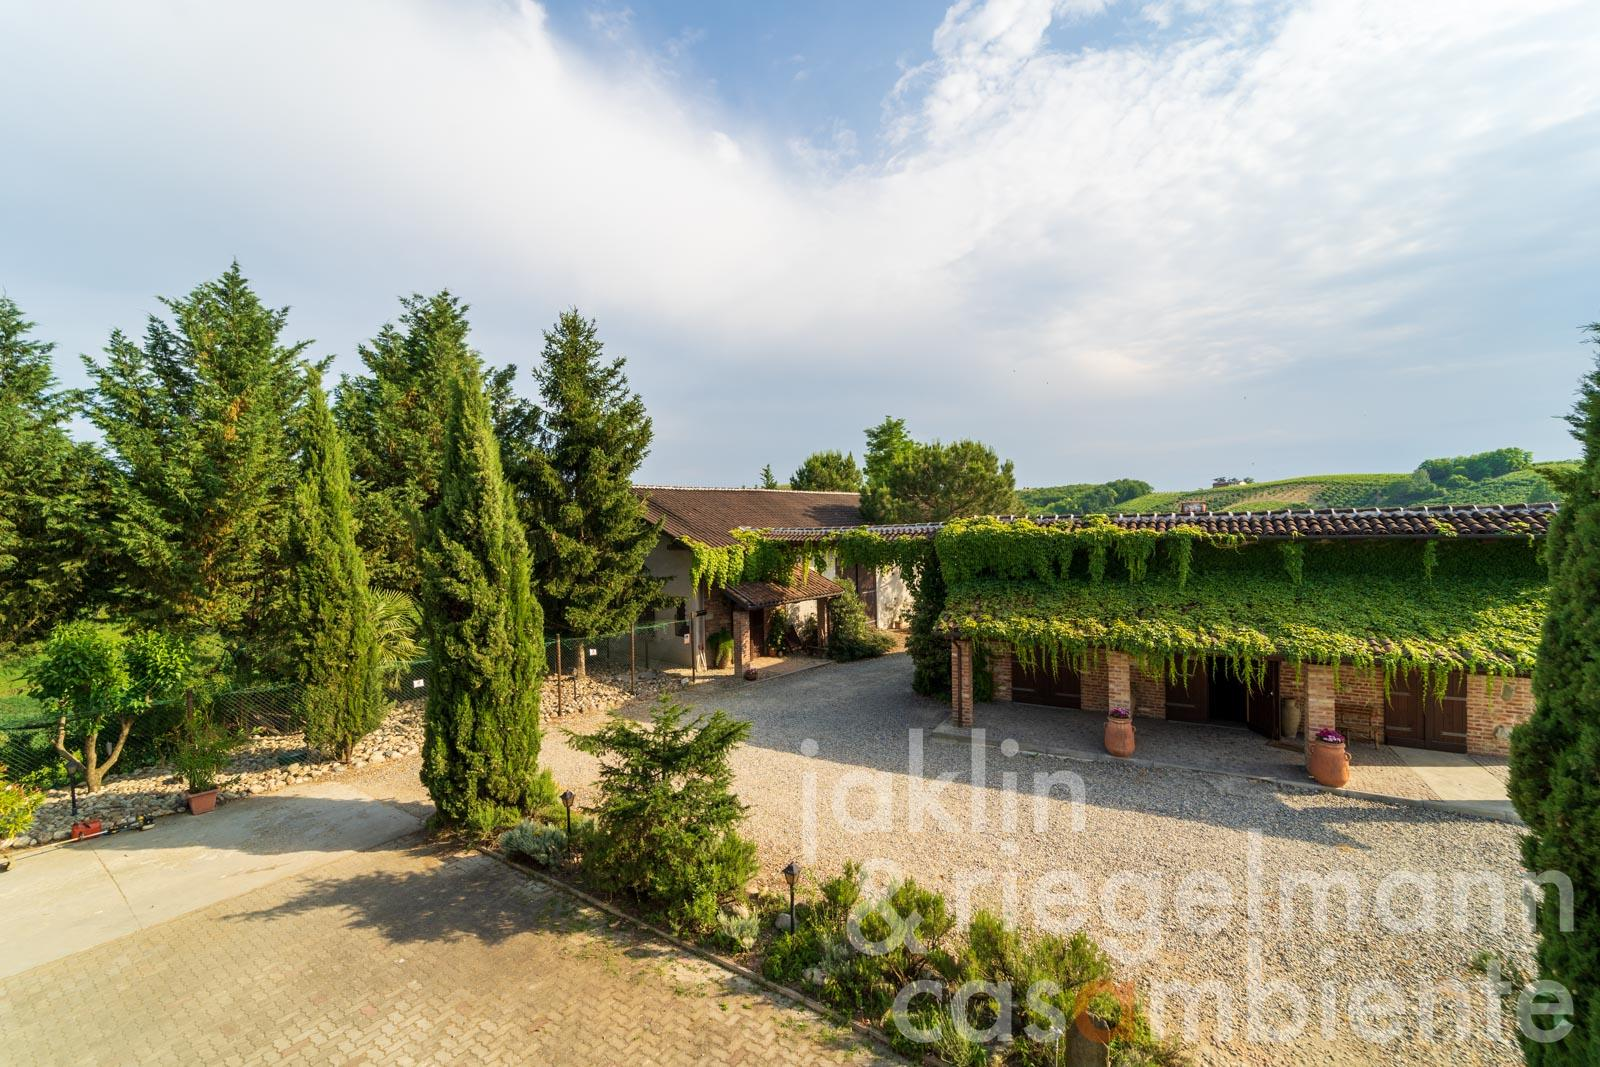 Winery with 4.5 ha of vineyards, residential house, wine tavern and wine cellar near Asti